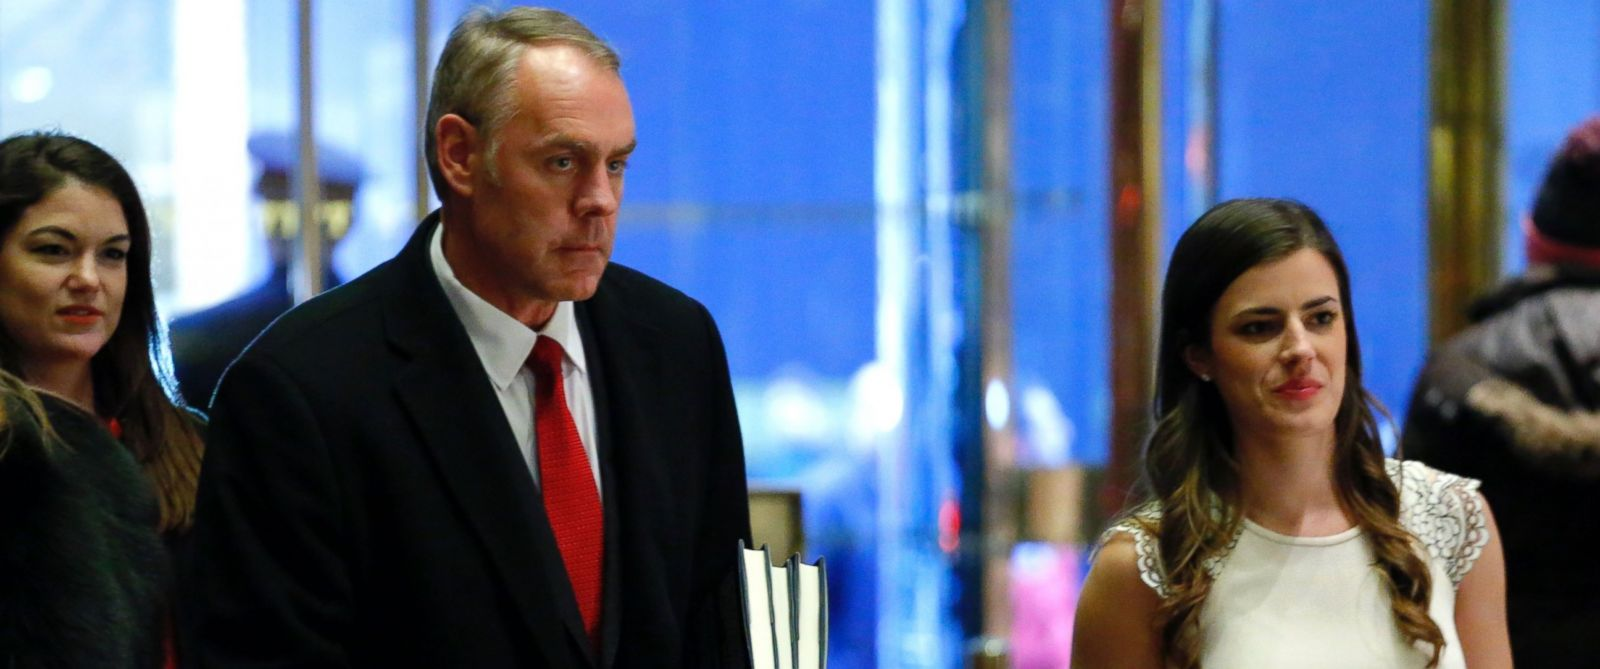 PHOTO: Ryan Zinke (L) arrives at Trump Tower, Dec. 12, 2016, in New York.